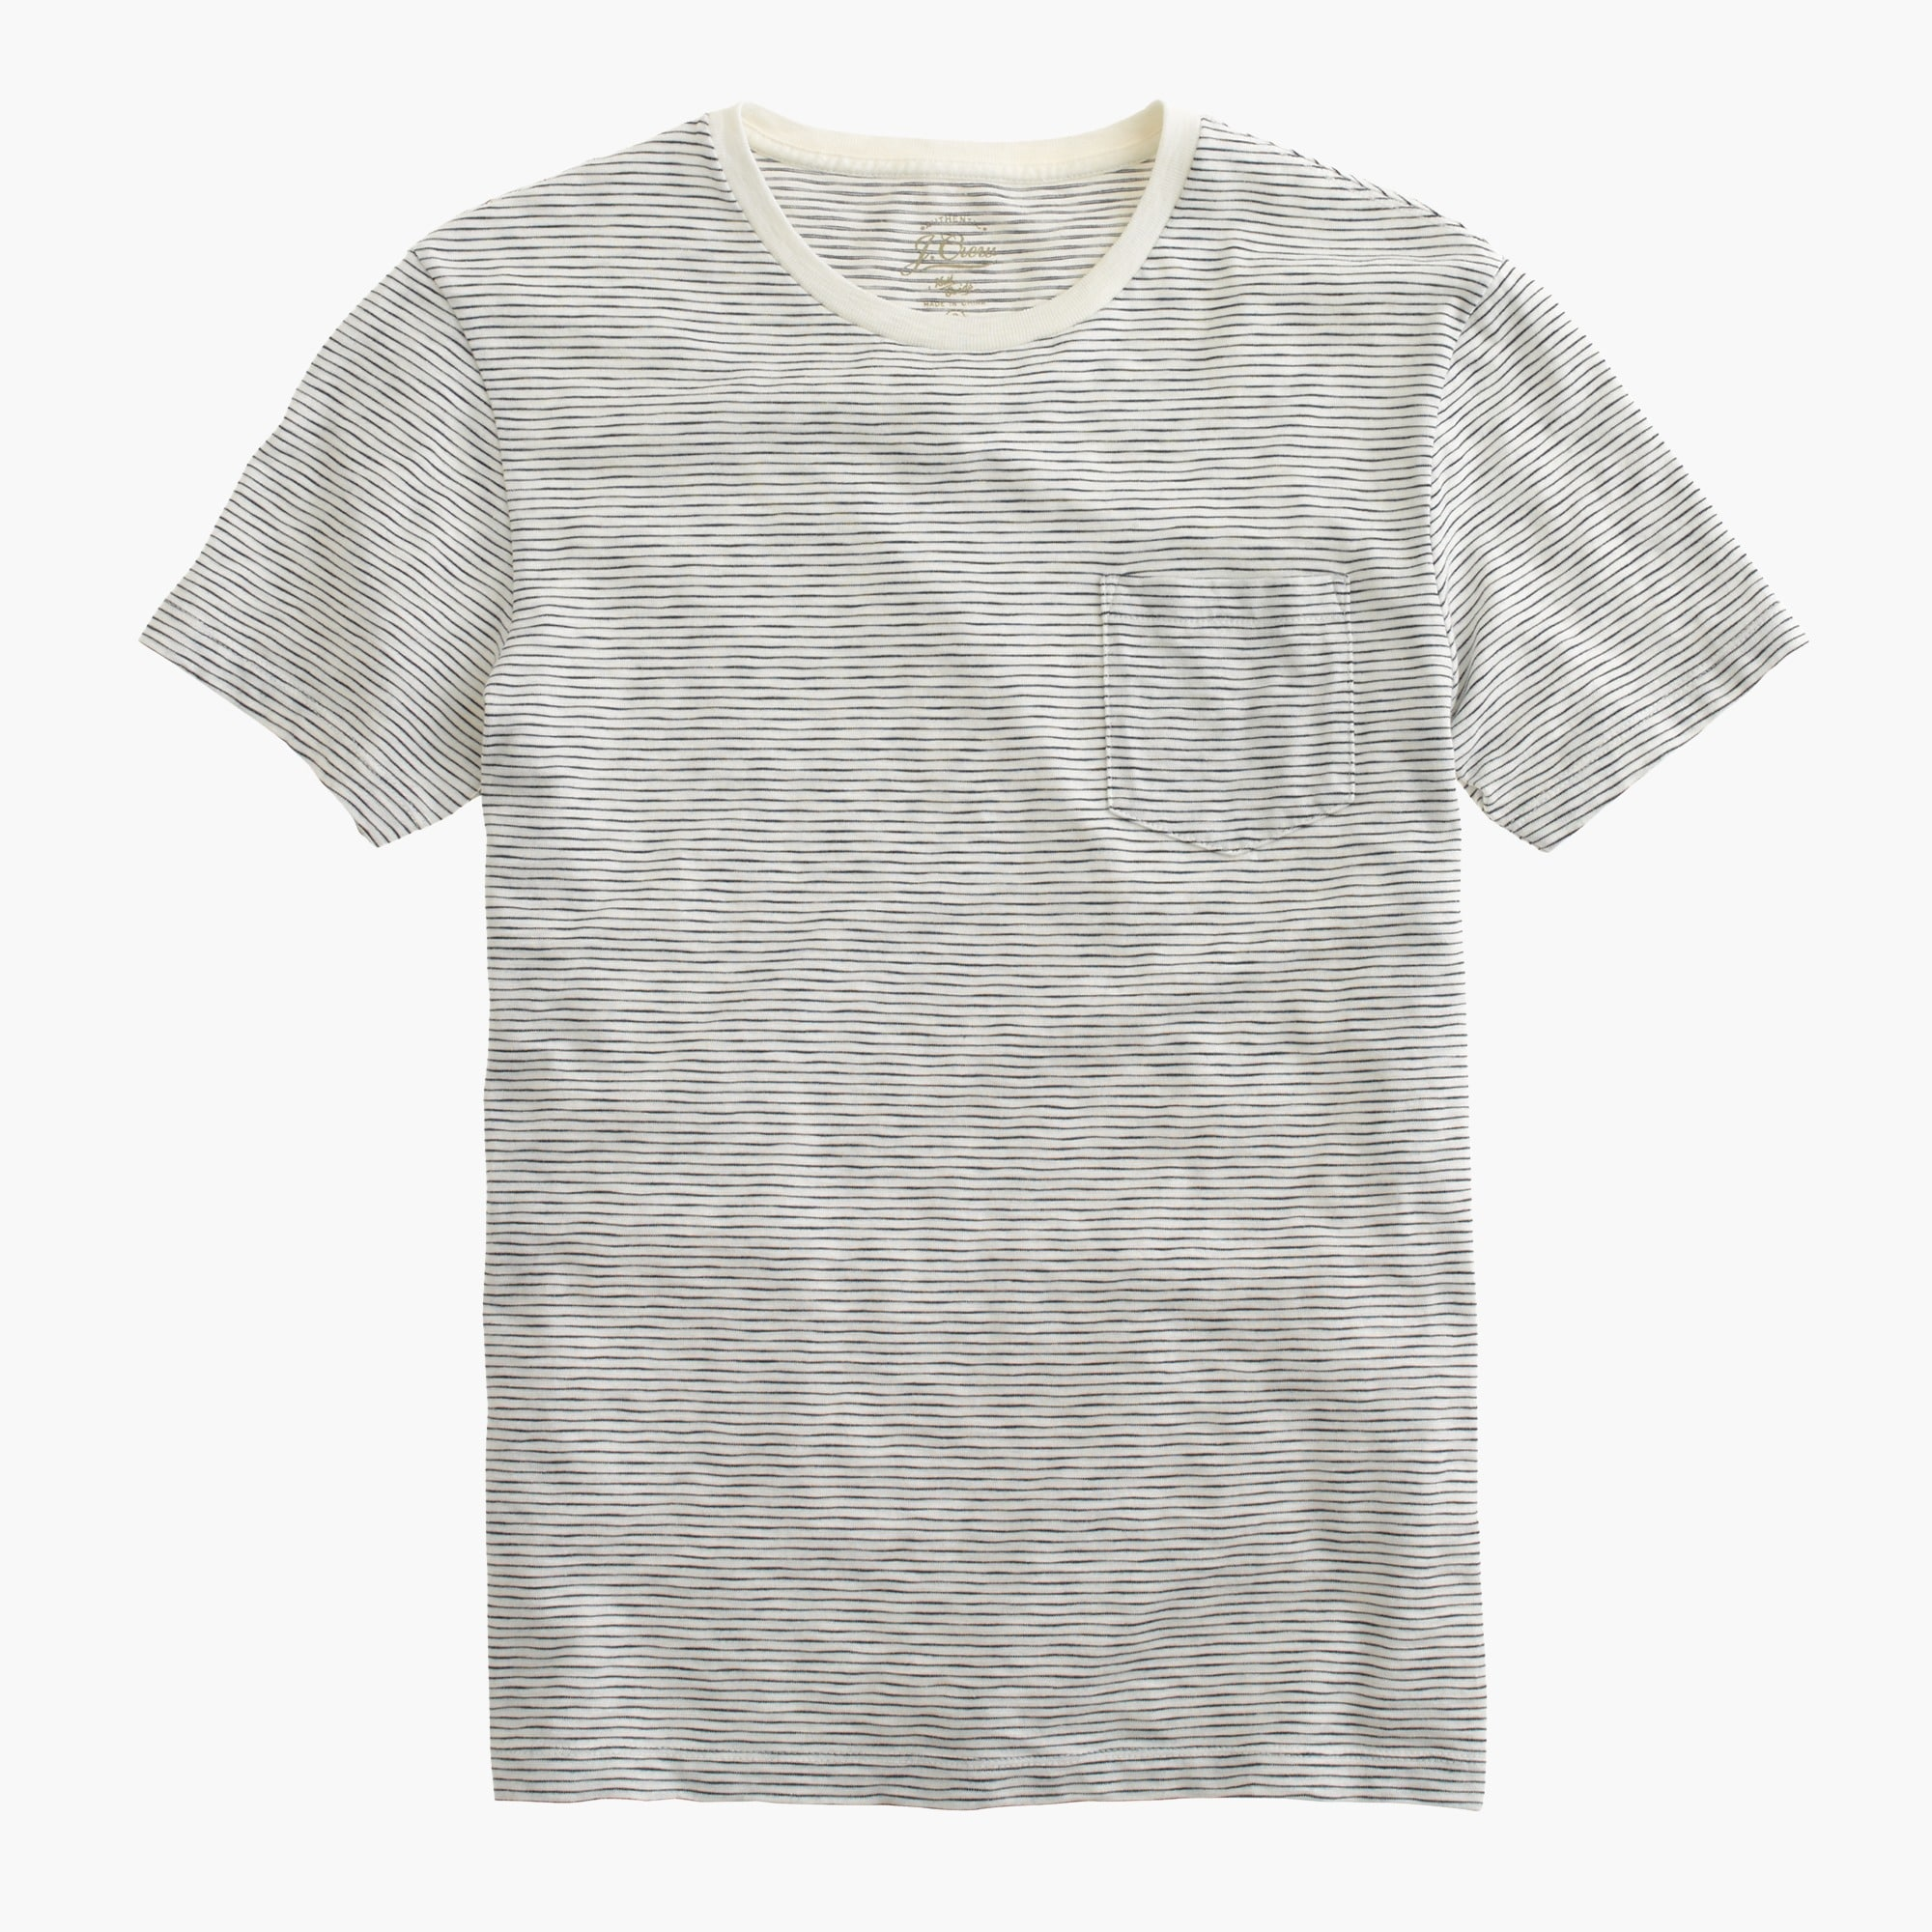 Image 2 for Slub cotton textured pocket T-shirt in wavy stripe